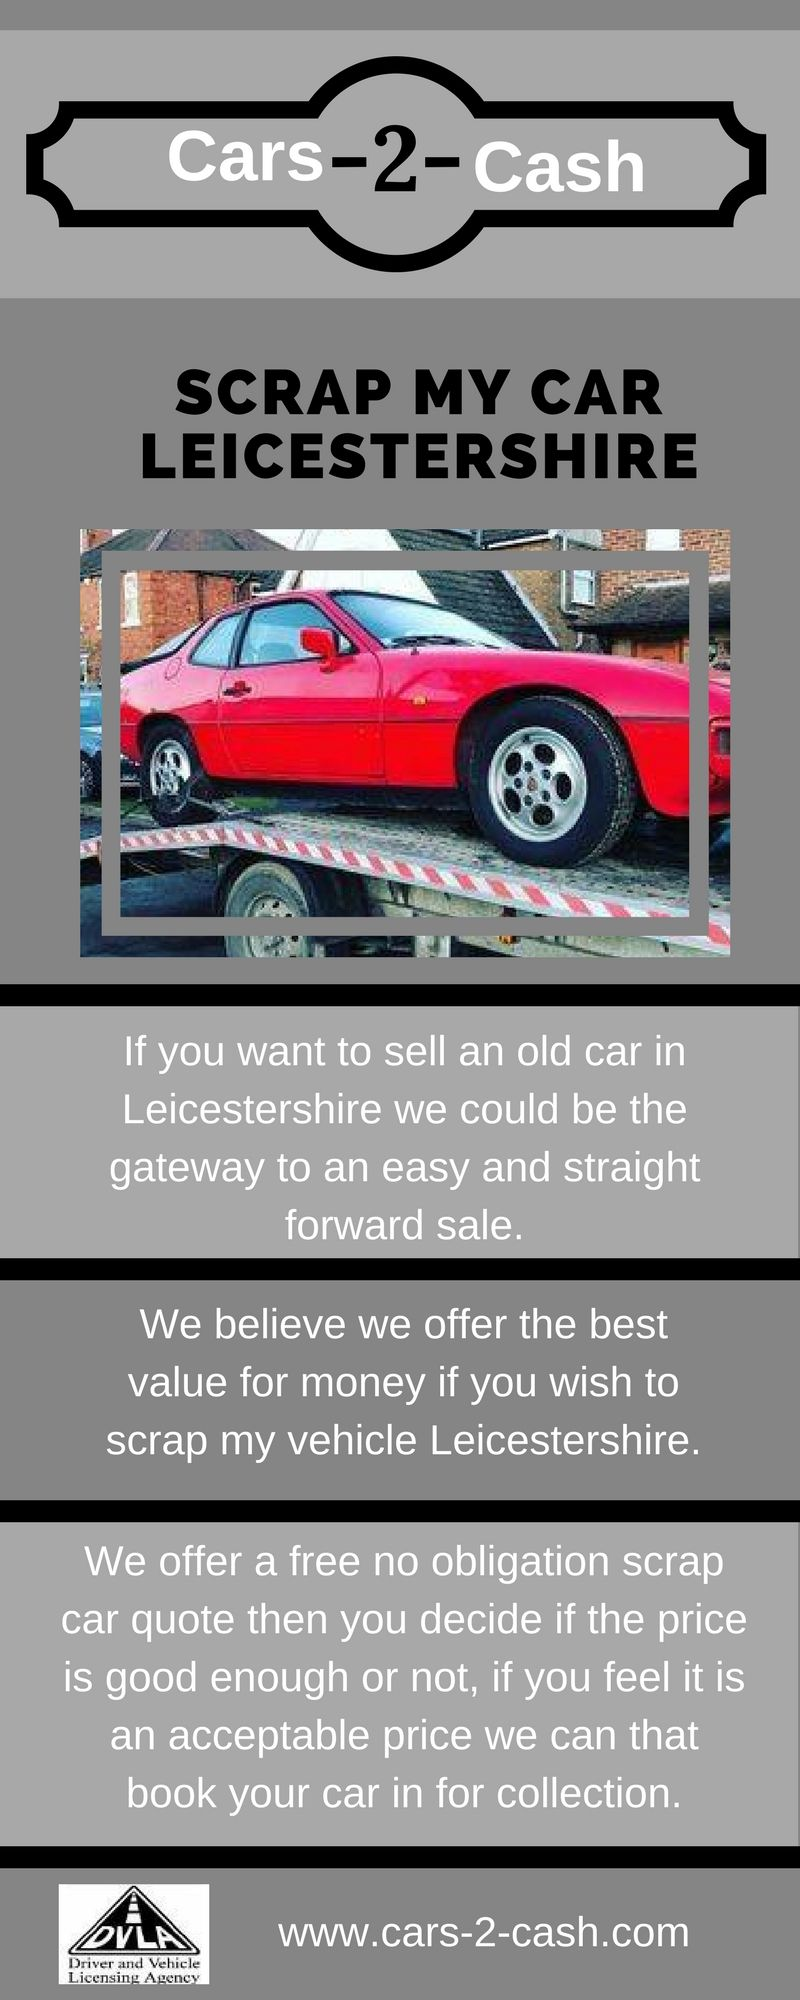 There are many scrap car buyers in Leicestershire cars2